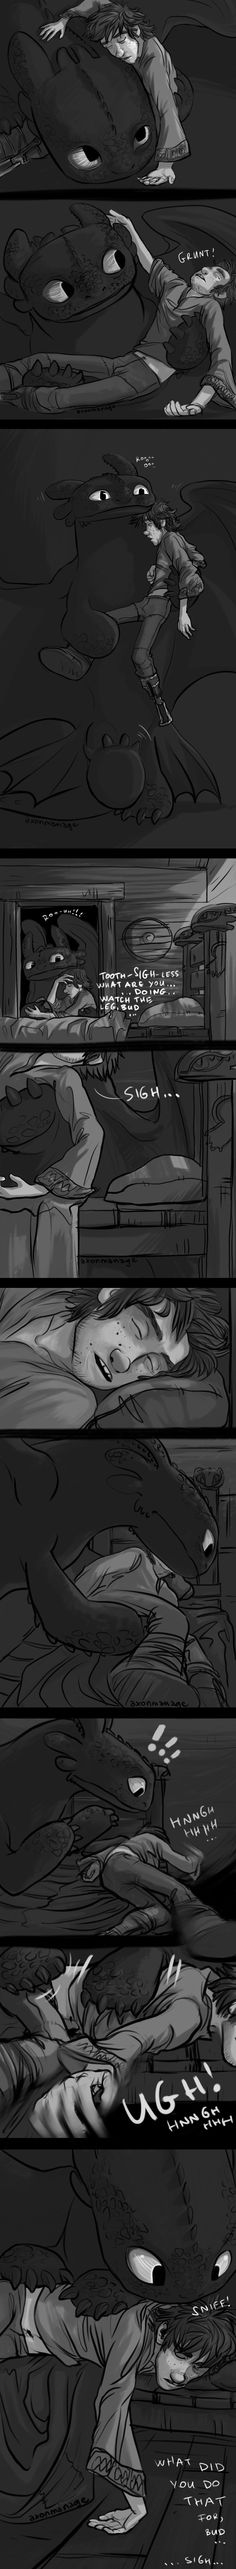 Tucked In - Part Seven by axondrive on DeviantArt